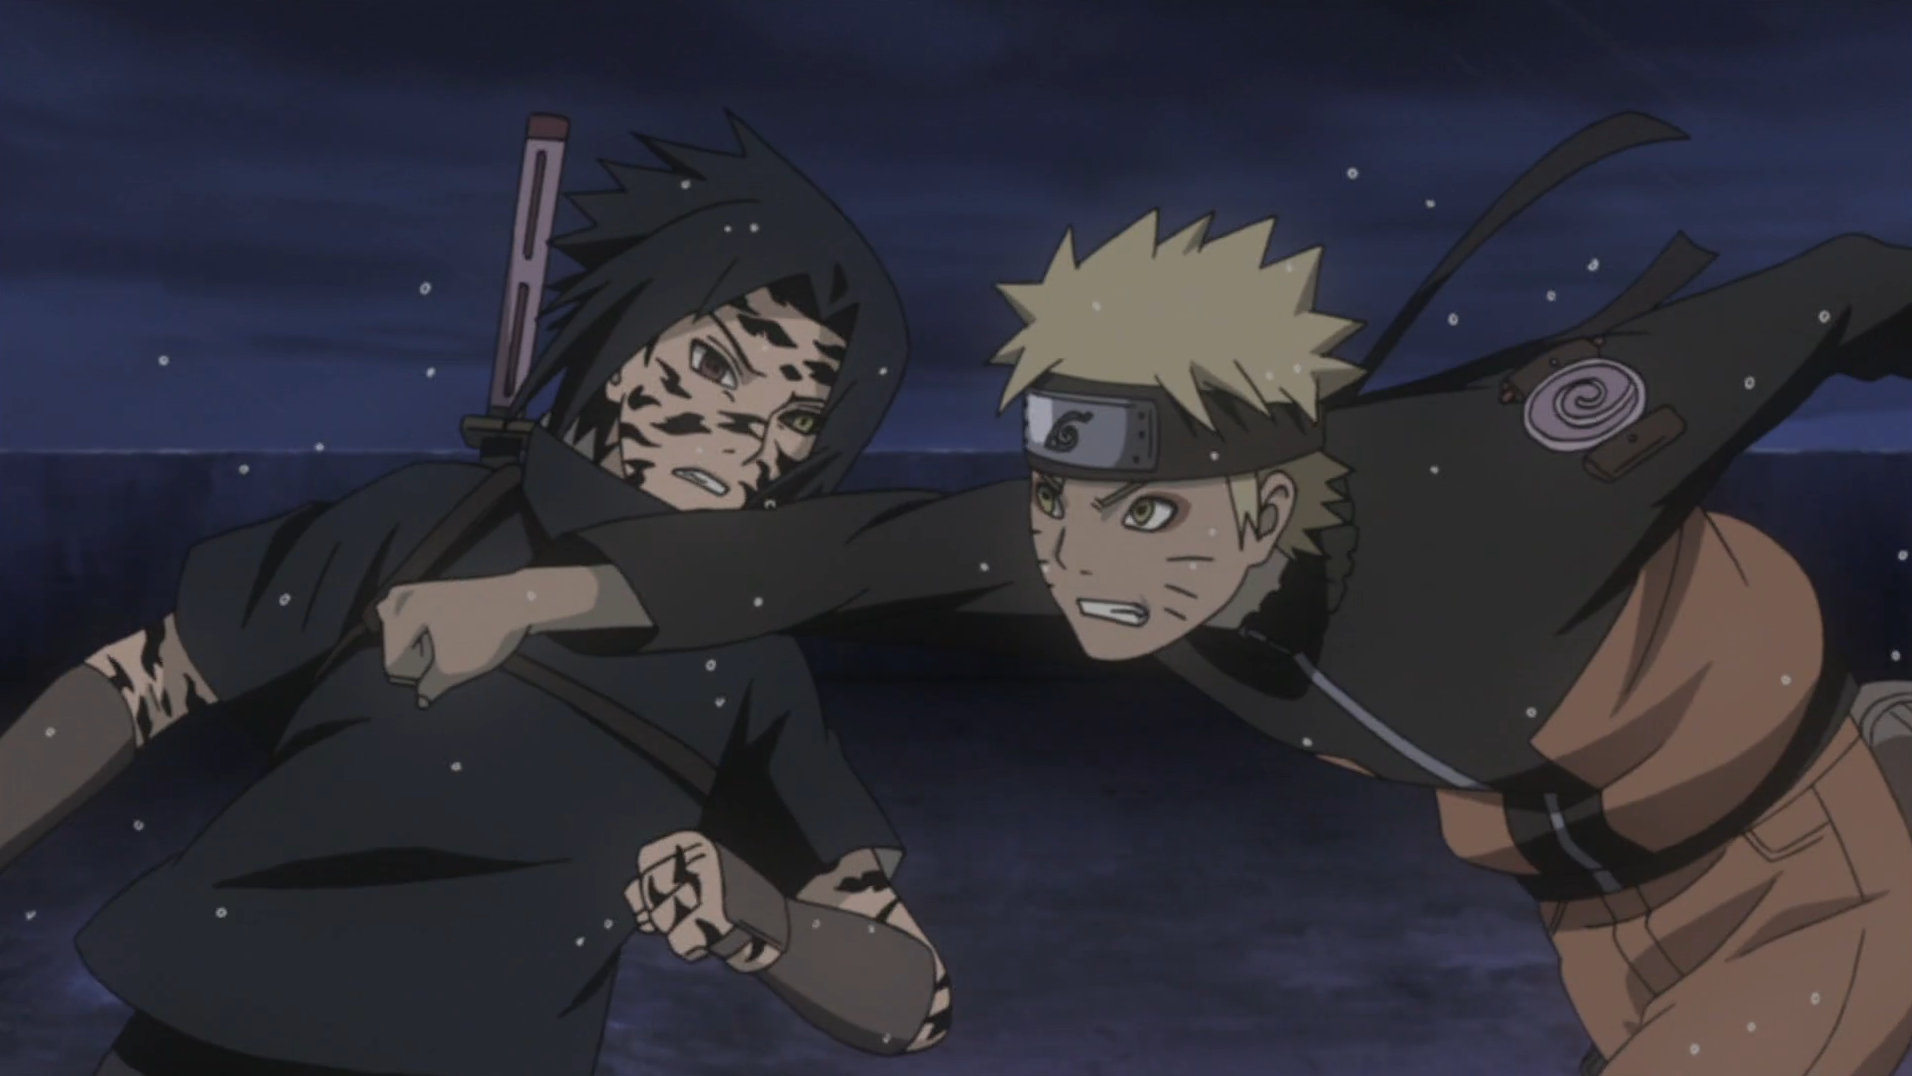 Collision | Narutopedia | Fandom powered by Wikia